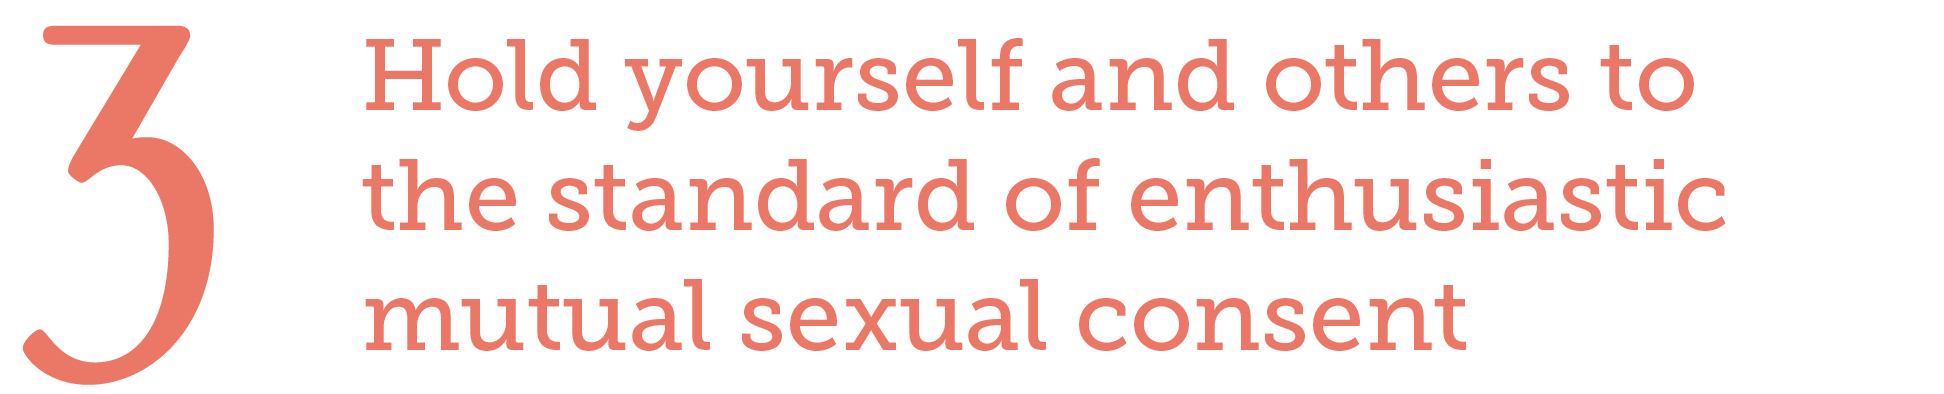 3.  Hold yourself and others to the standard of enthusiastic mutual sexual consent